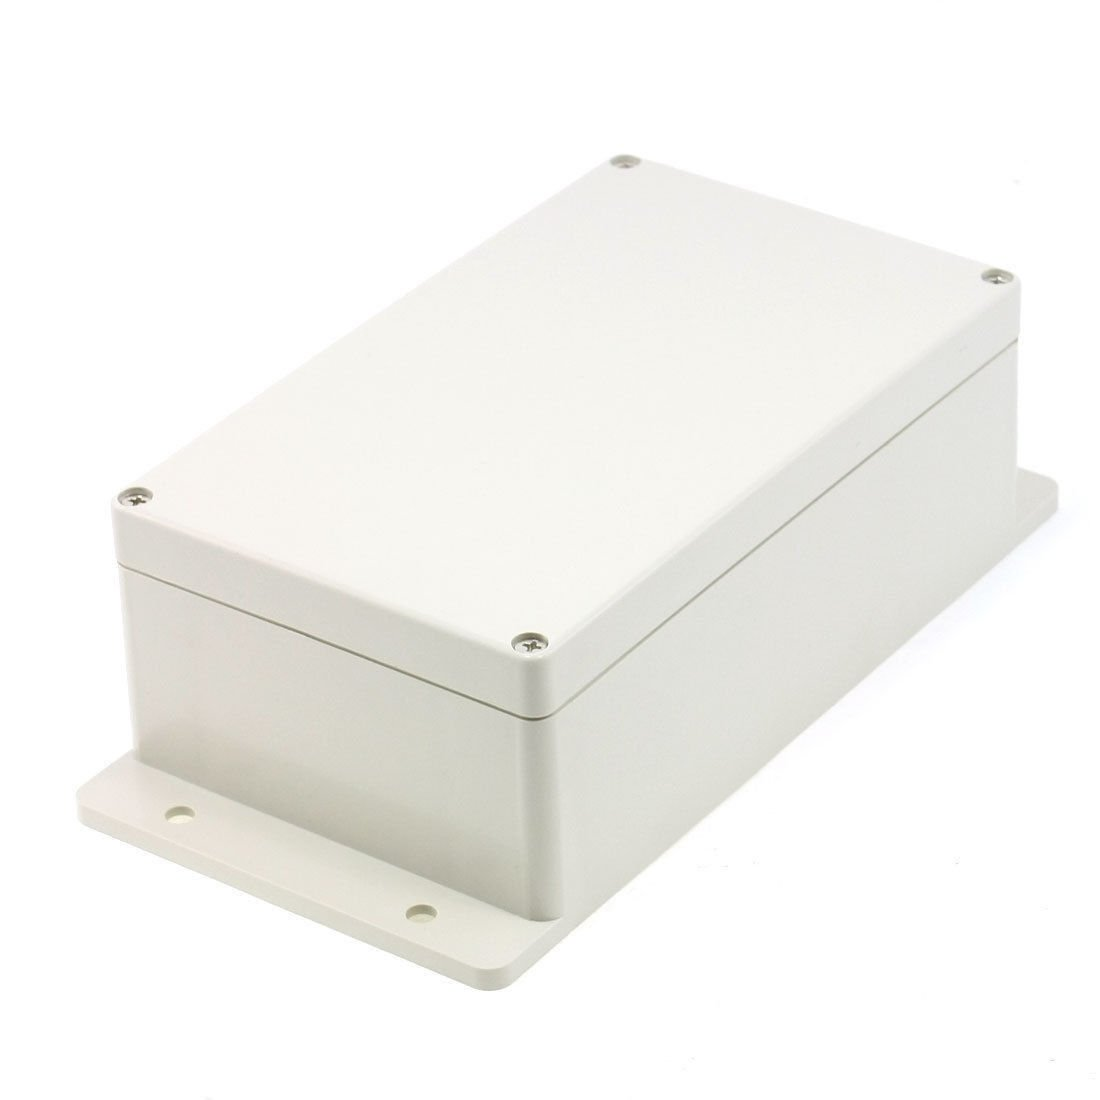 Surface Mounted Waterproof Sealed Plastic Electric Junction Box 200x120x75mm